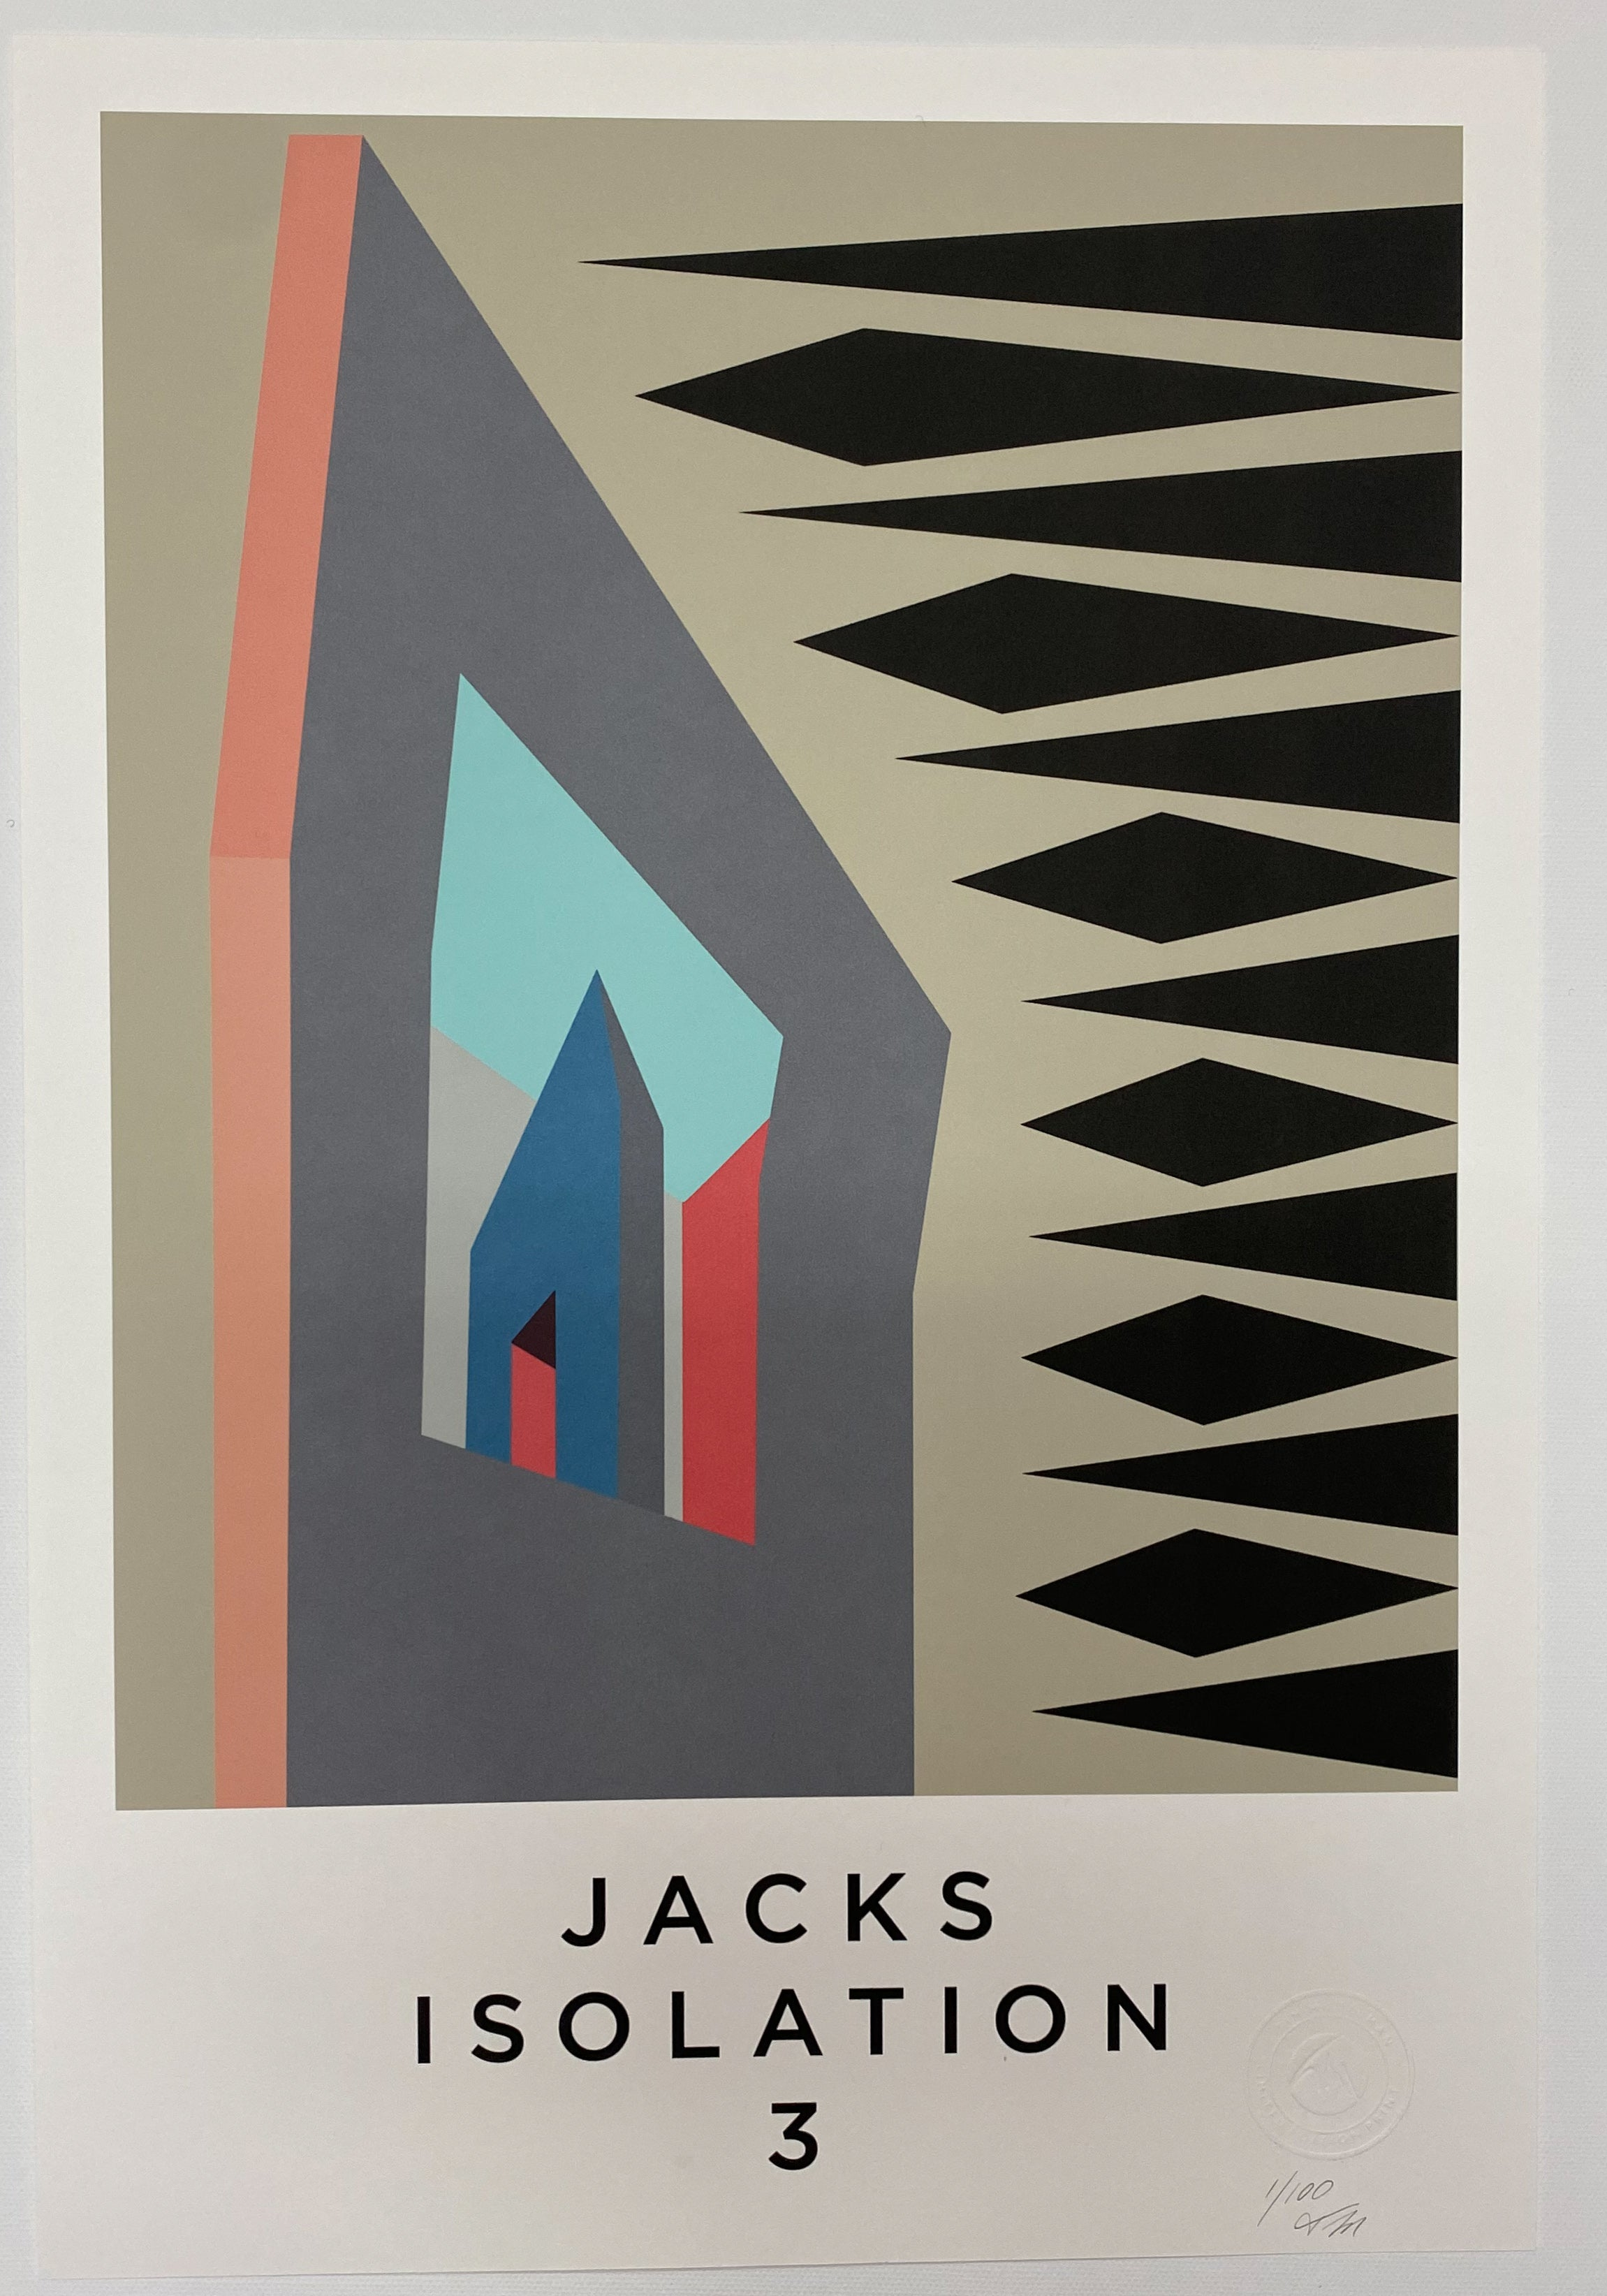 JACKS ISOLATION. Limited Edition Giclee Print